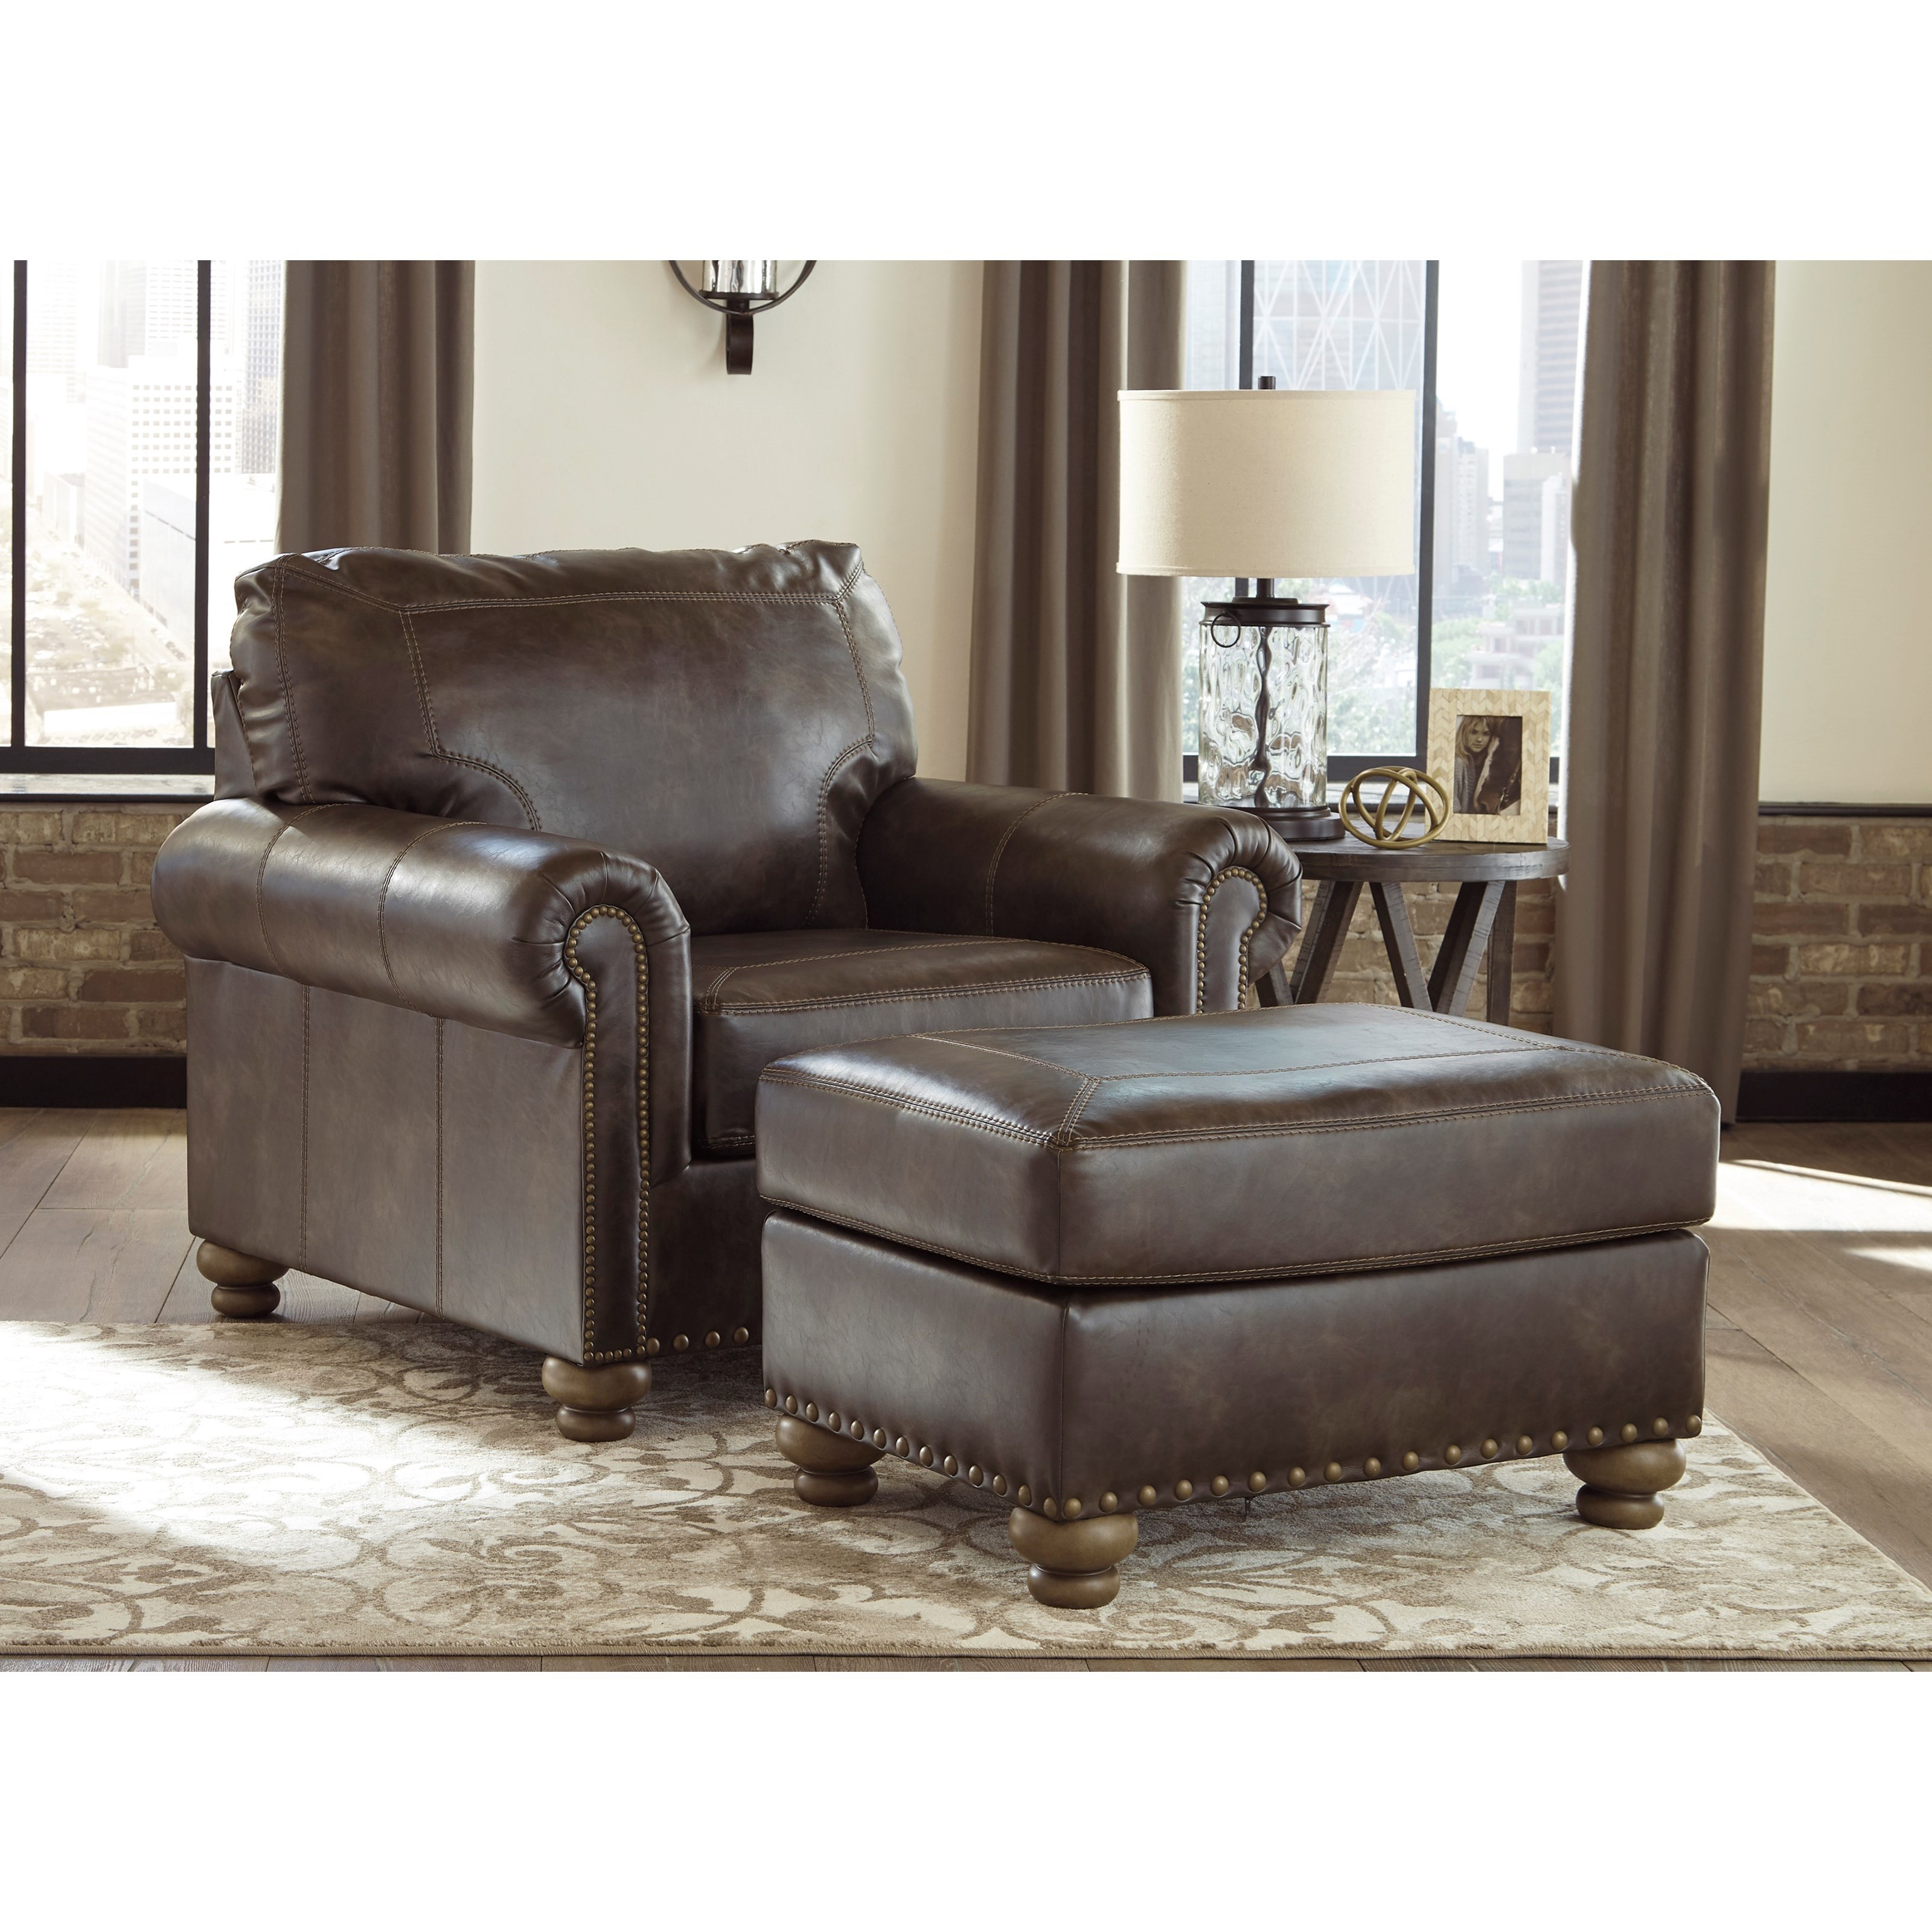 Nicorvo Chair & Ottoman by Signature Design by Ashley at Smart Buy Furniture